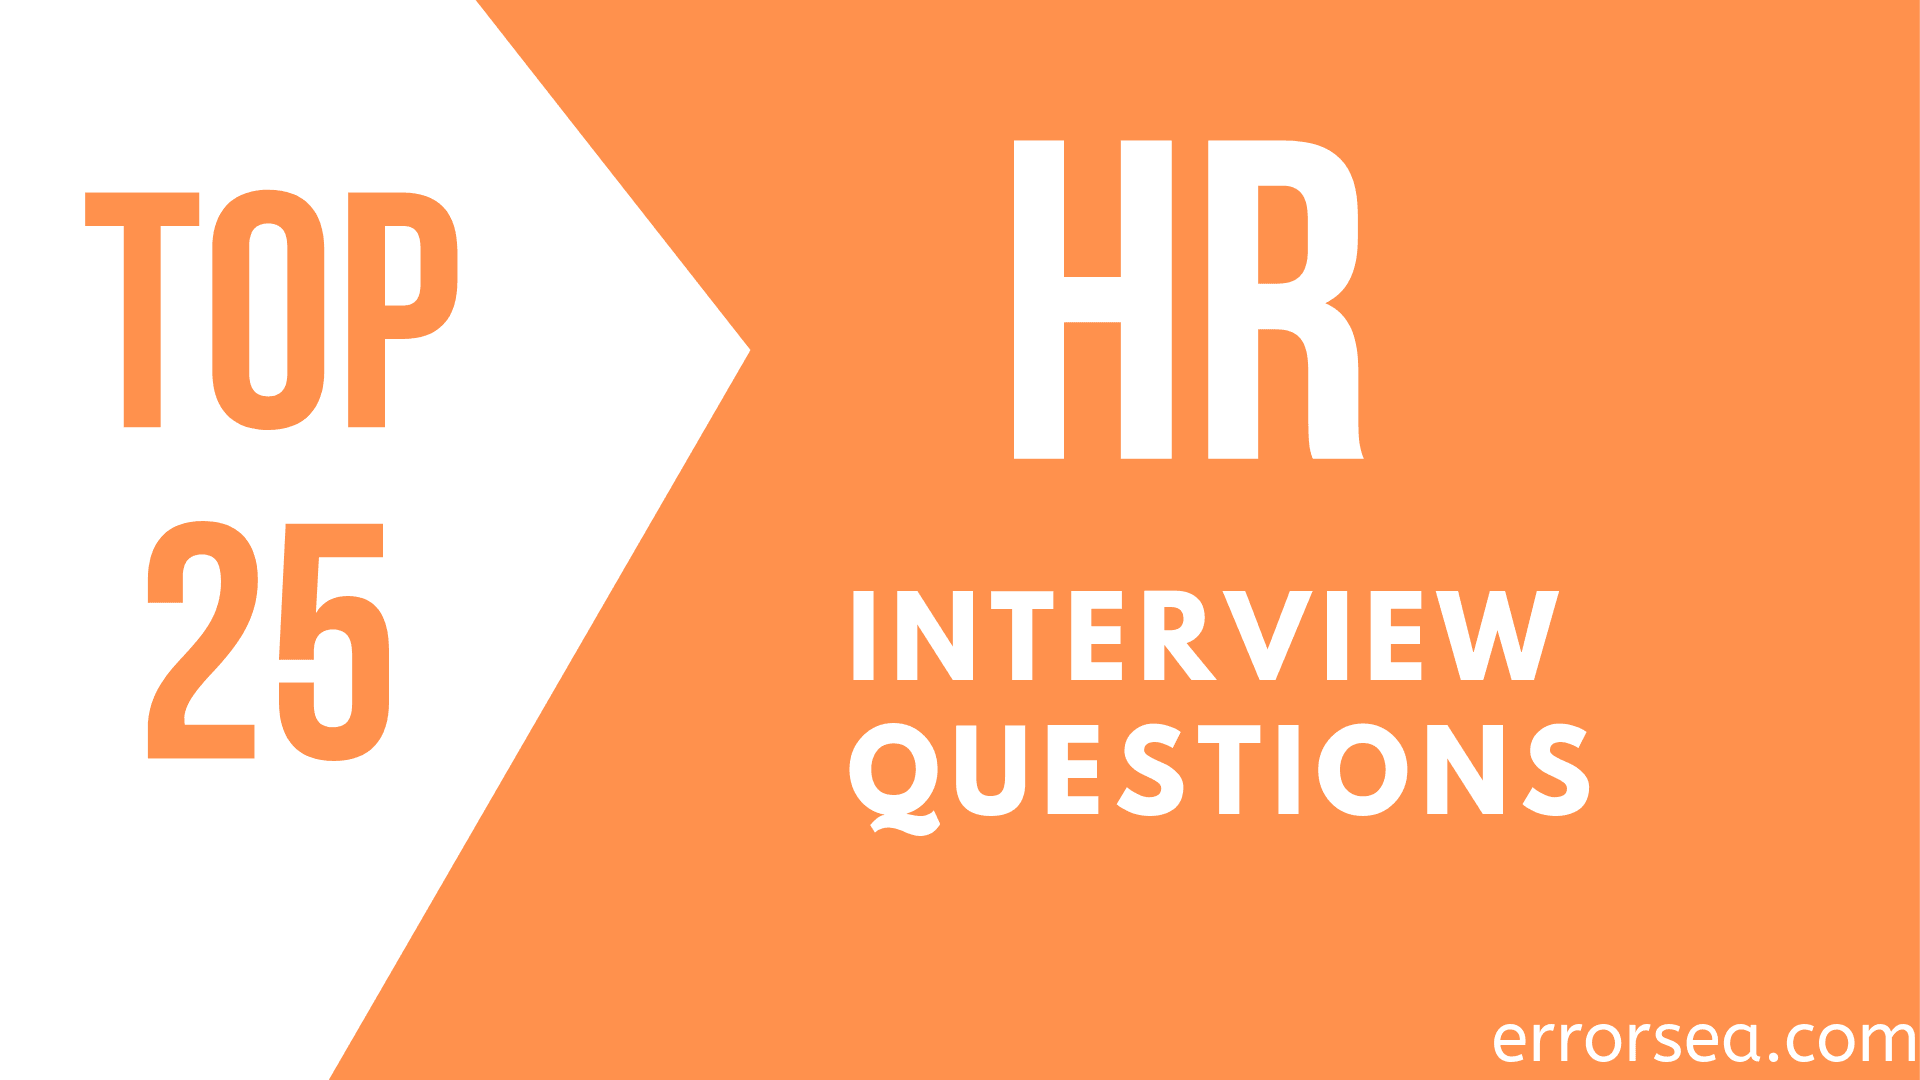 Top 25 HR Interview Questions